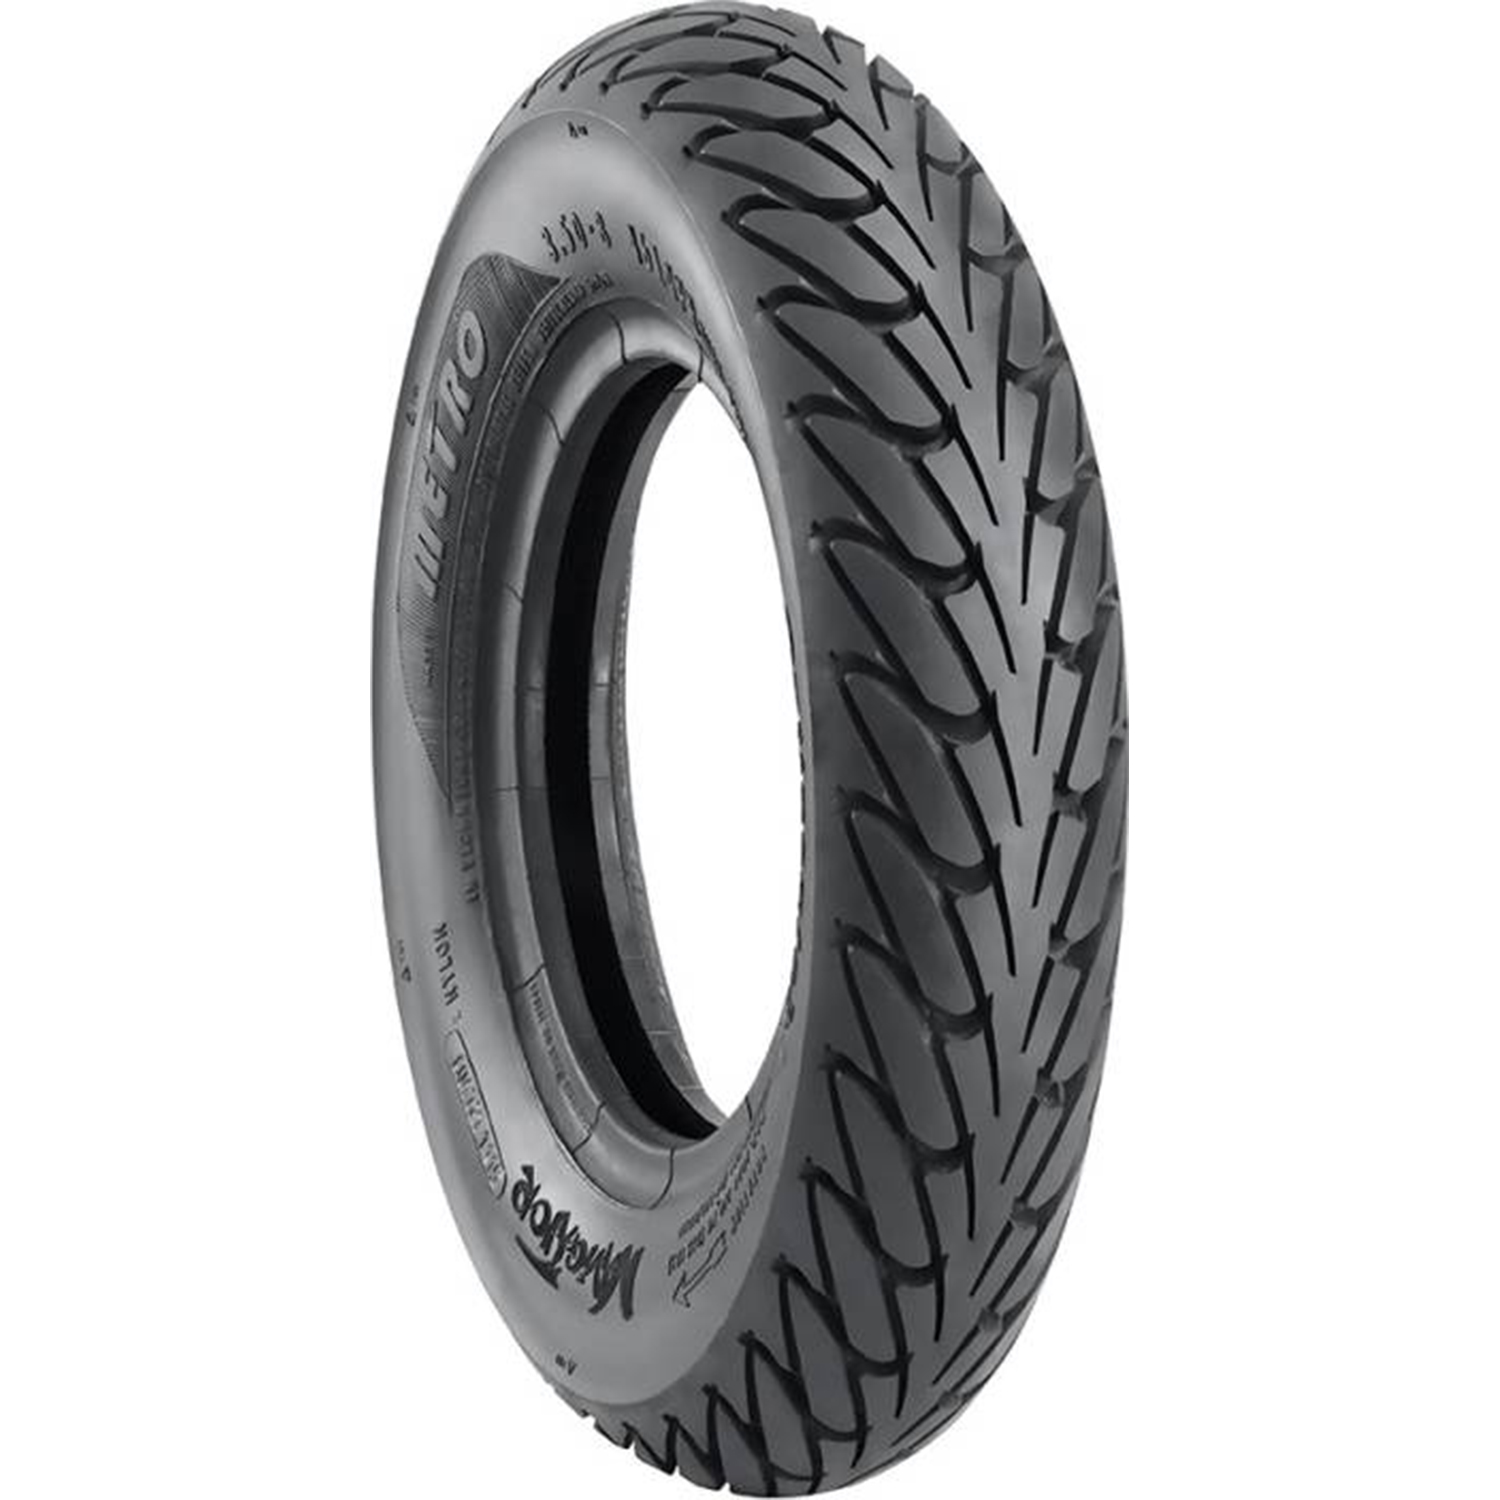 Metro NAVIGATOR 100/90 18 Requires Tube Rear Two-Wheeler Tyre